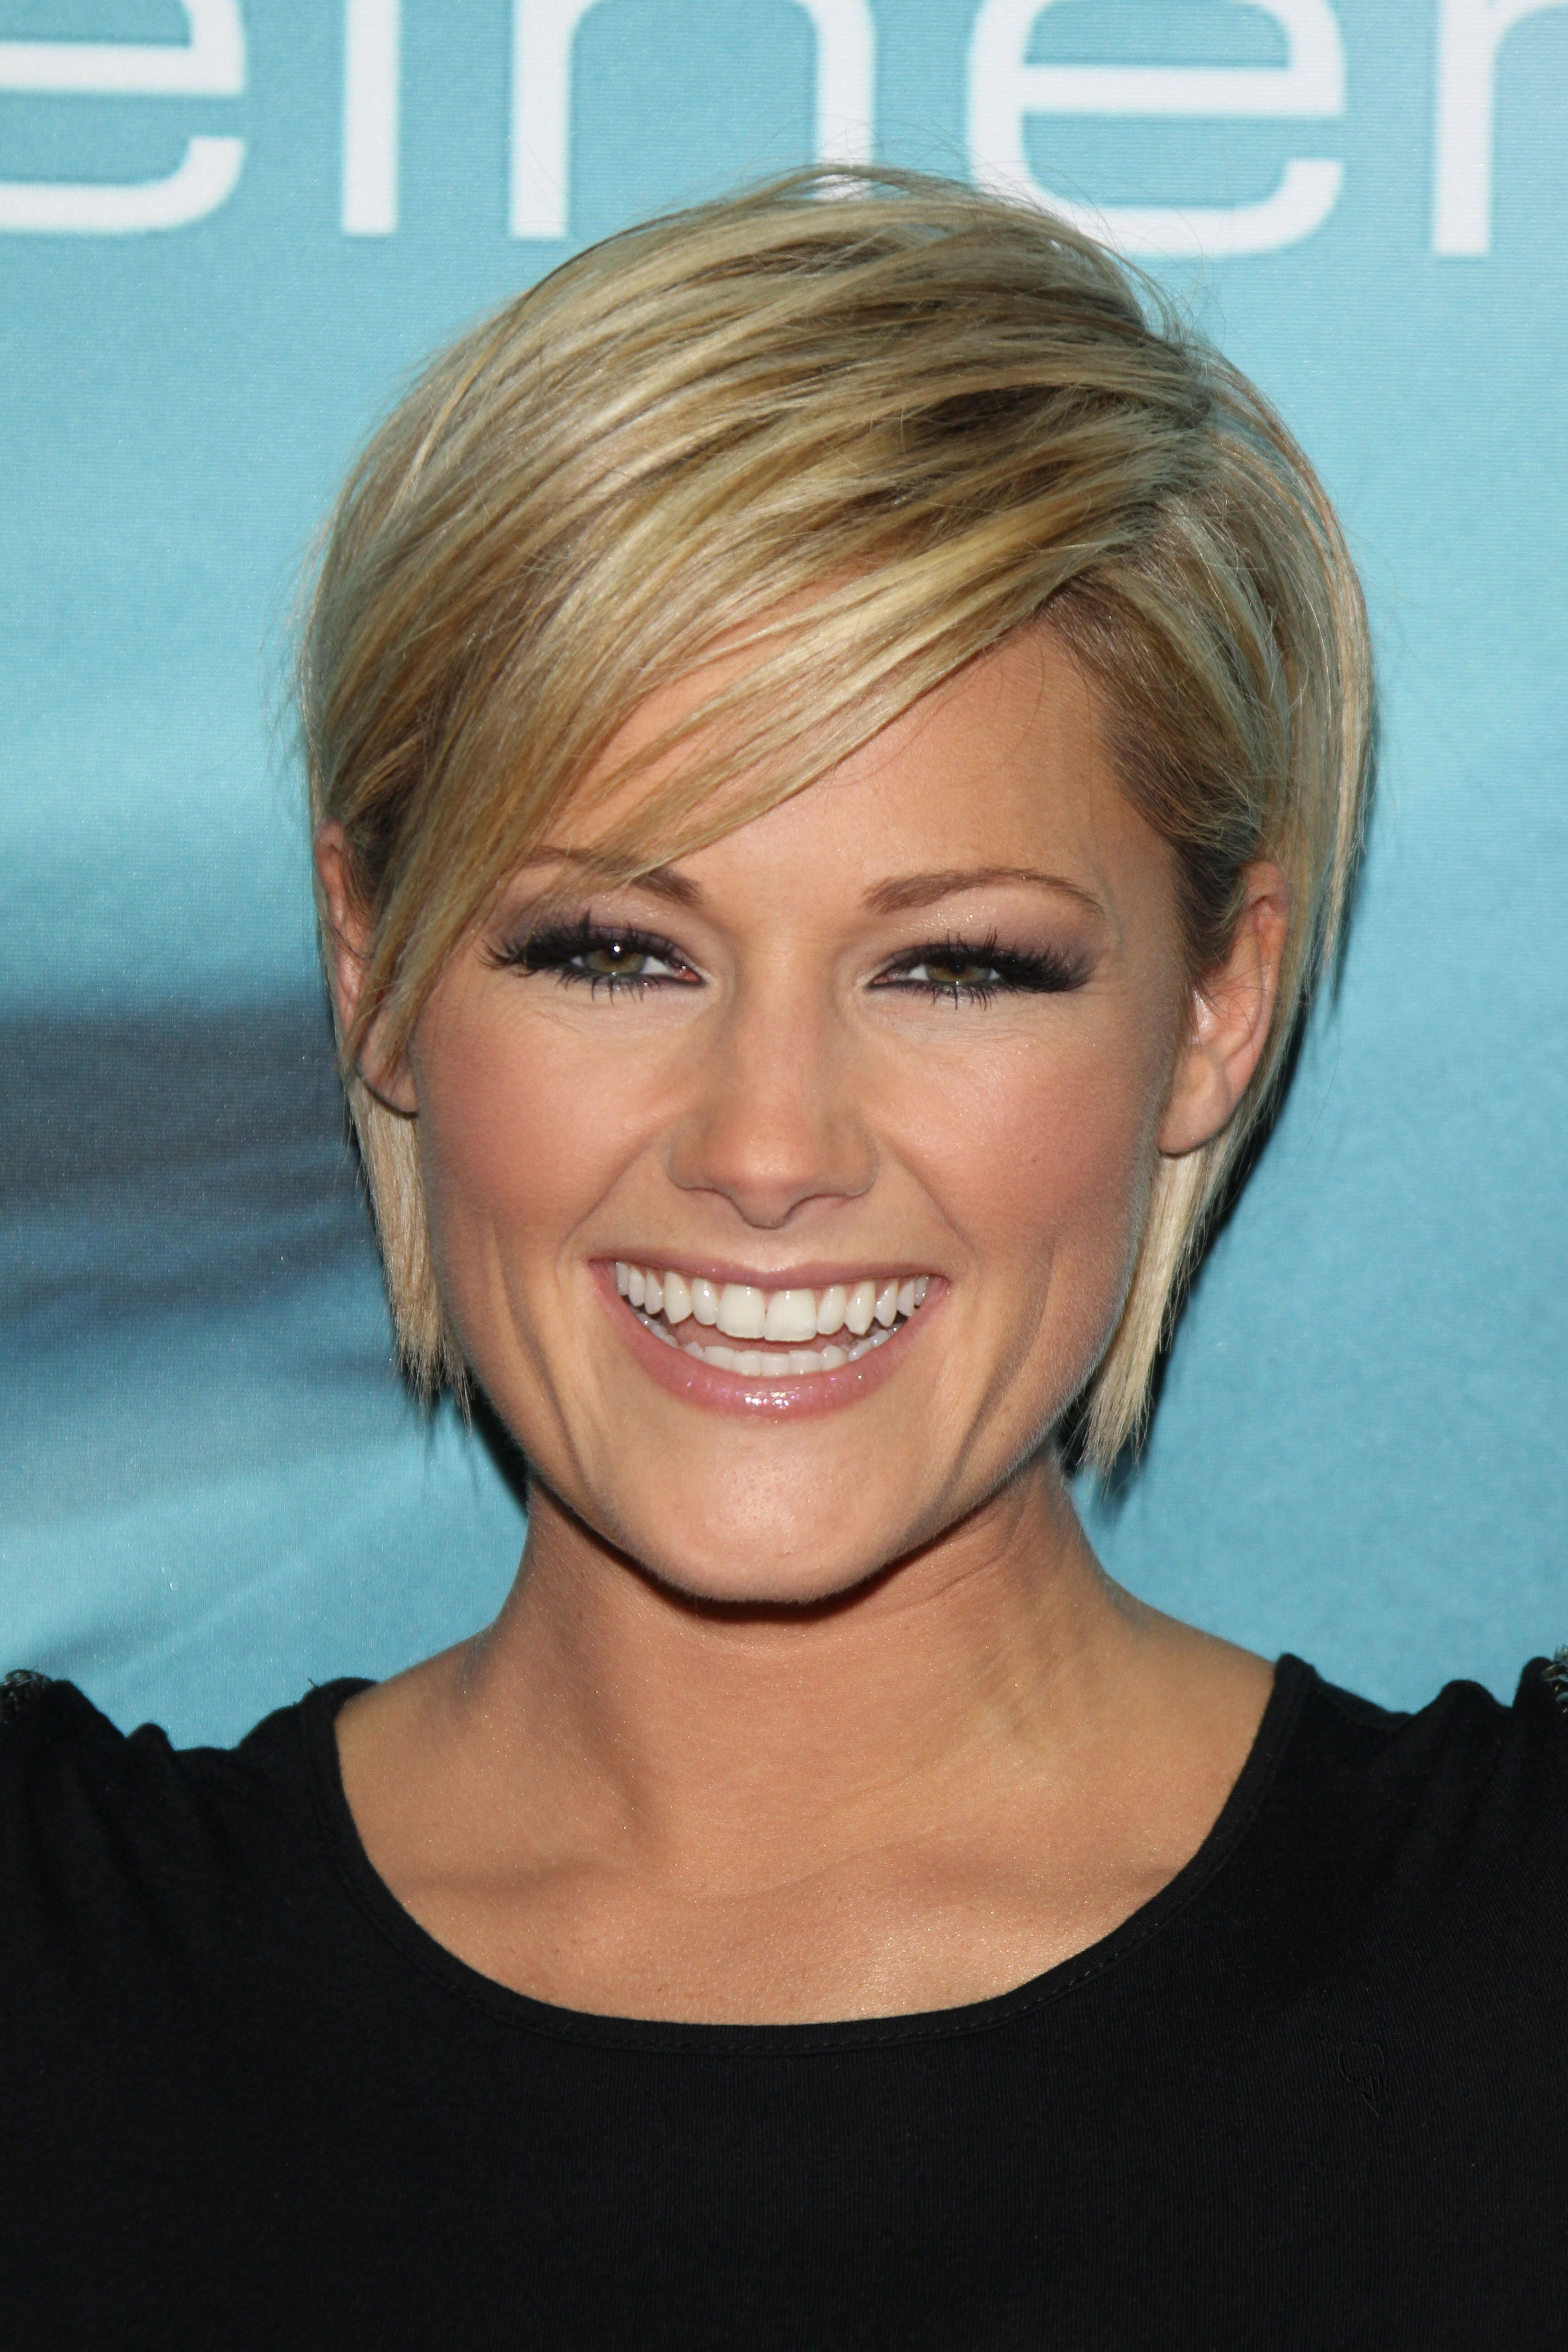 helene fischer helene fischer pinterest haircuts and. Black Bedroom Furniture Sets. Home Design Ideas